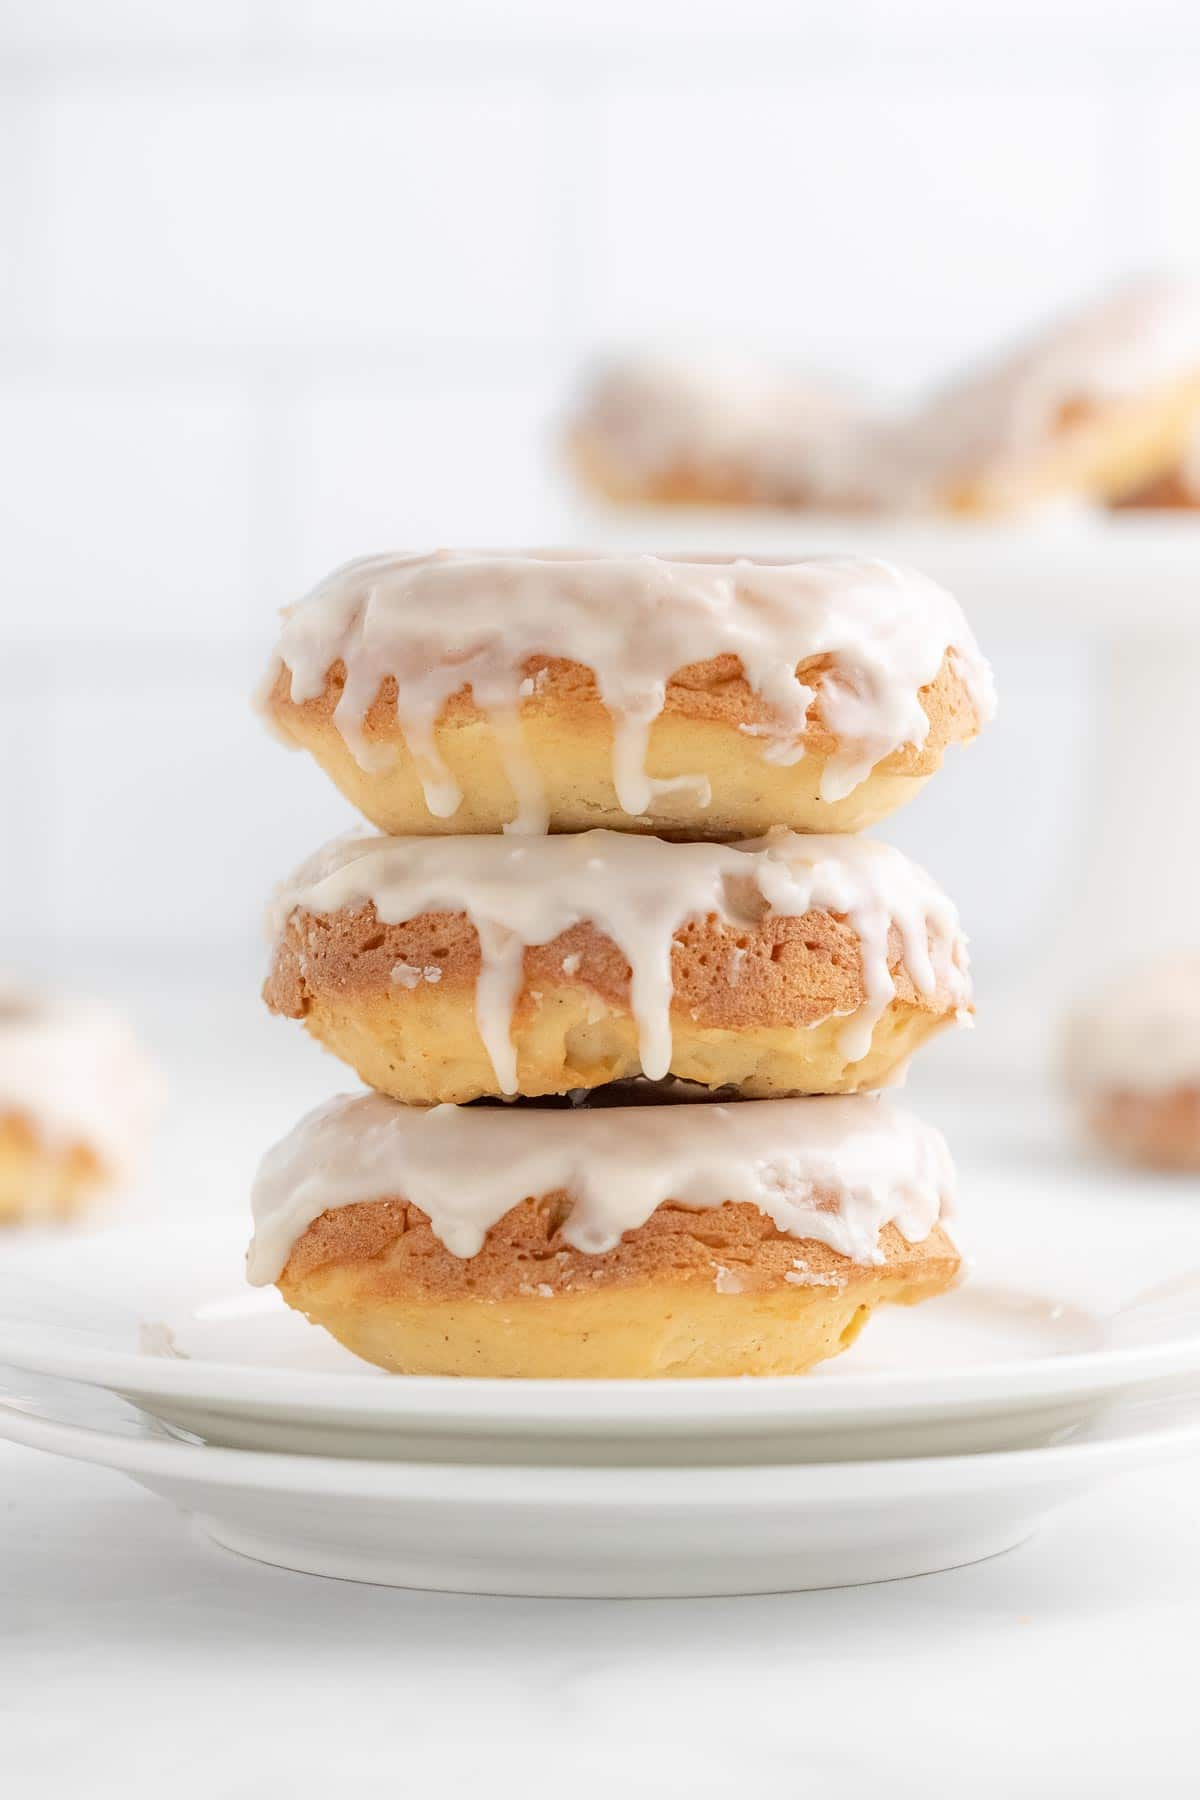 a stack of three glazed donuts on a white plate